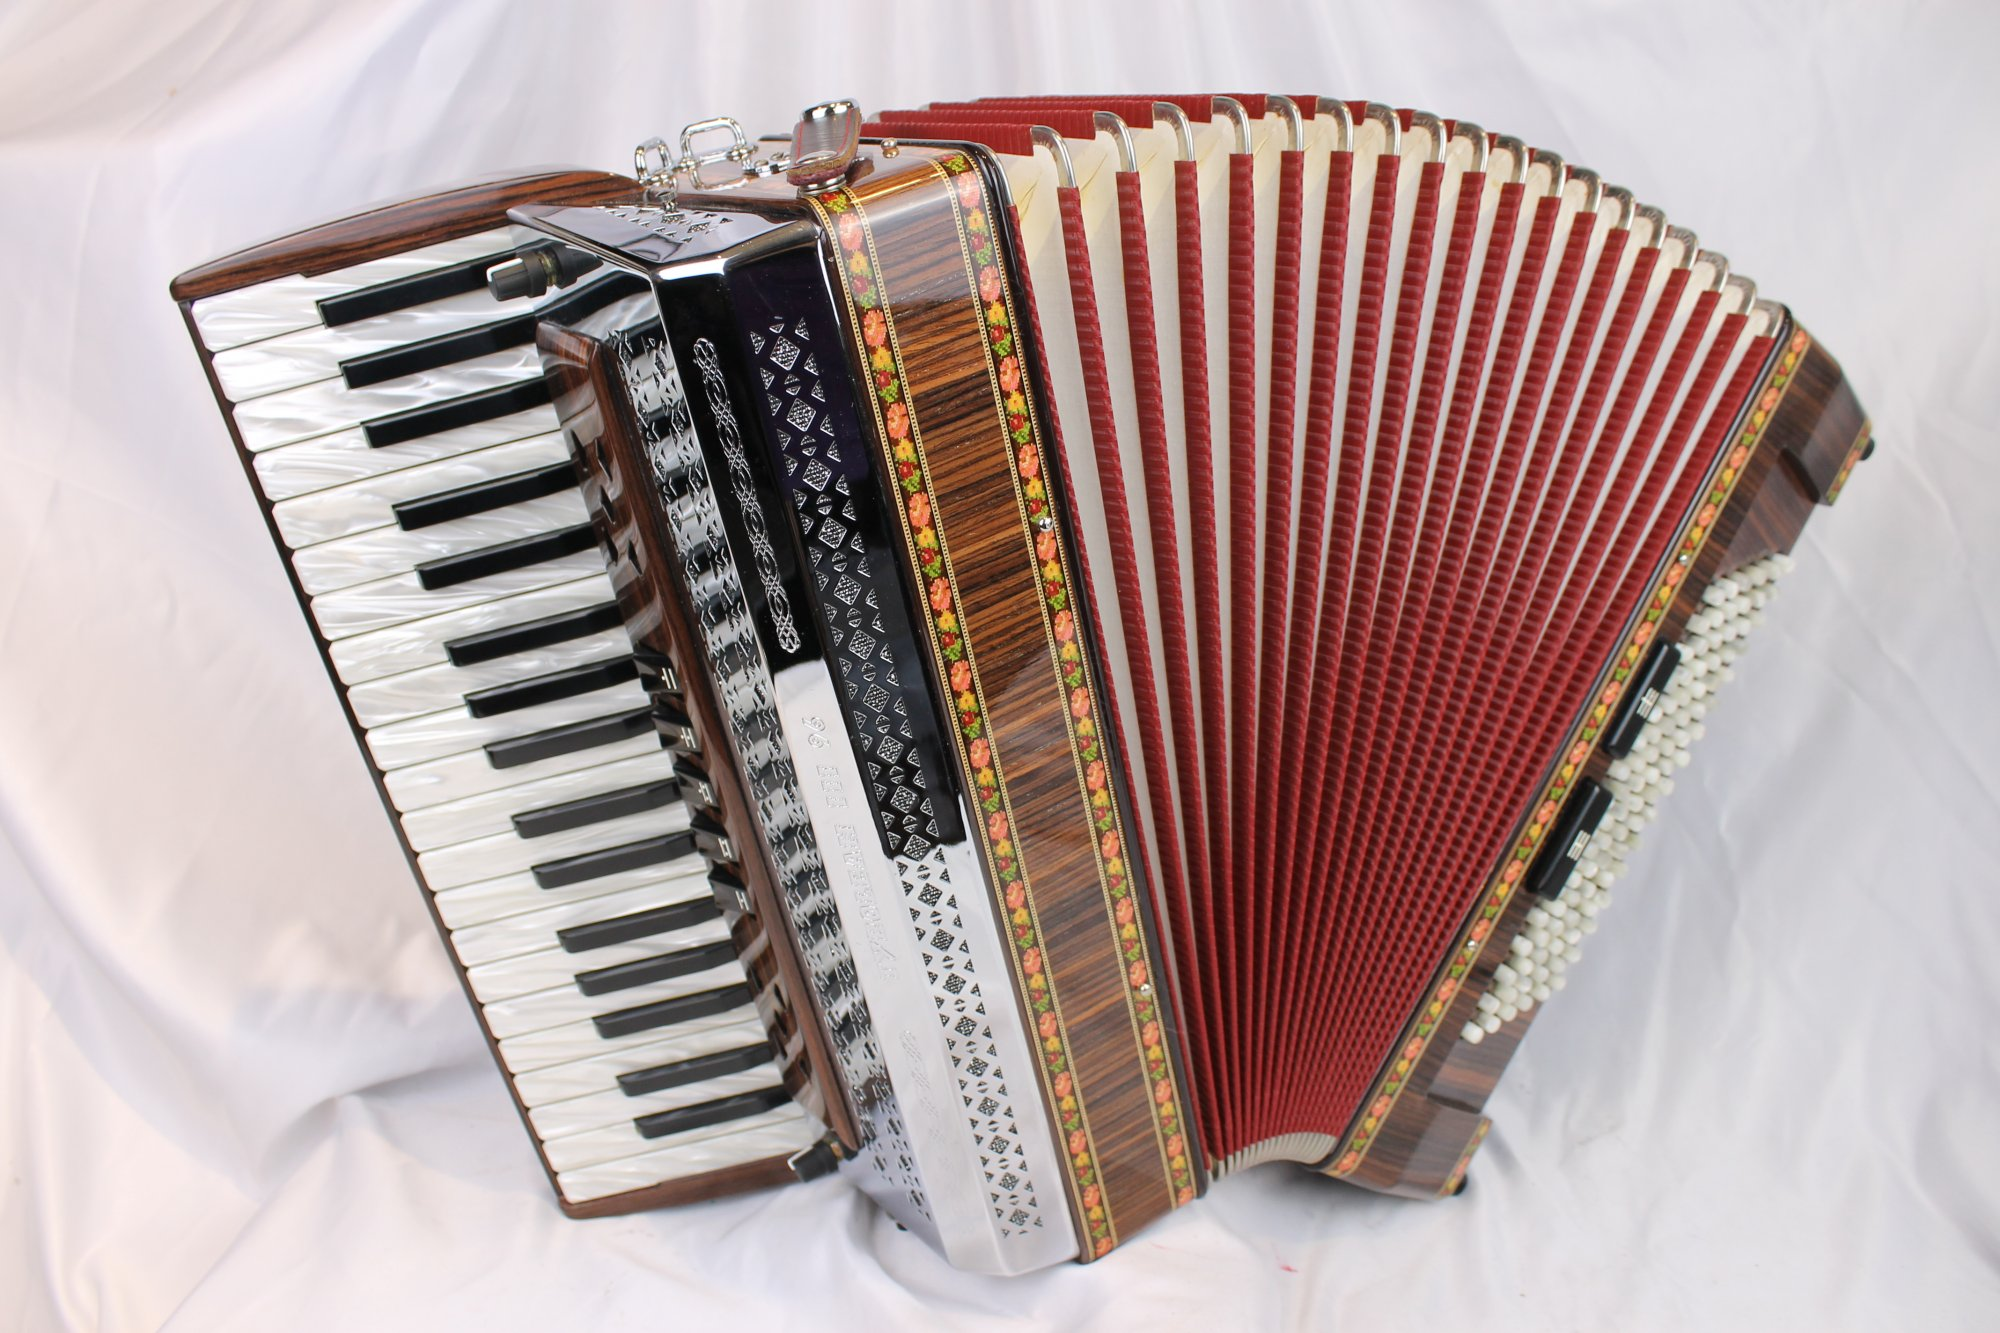 5012 - Like New Rosewood Beltuna Tyrolean III Piano Accordion LMM 37 96